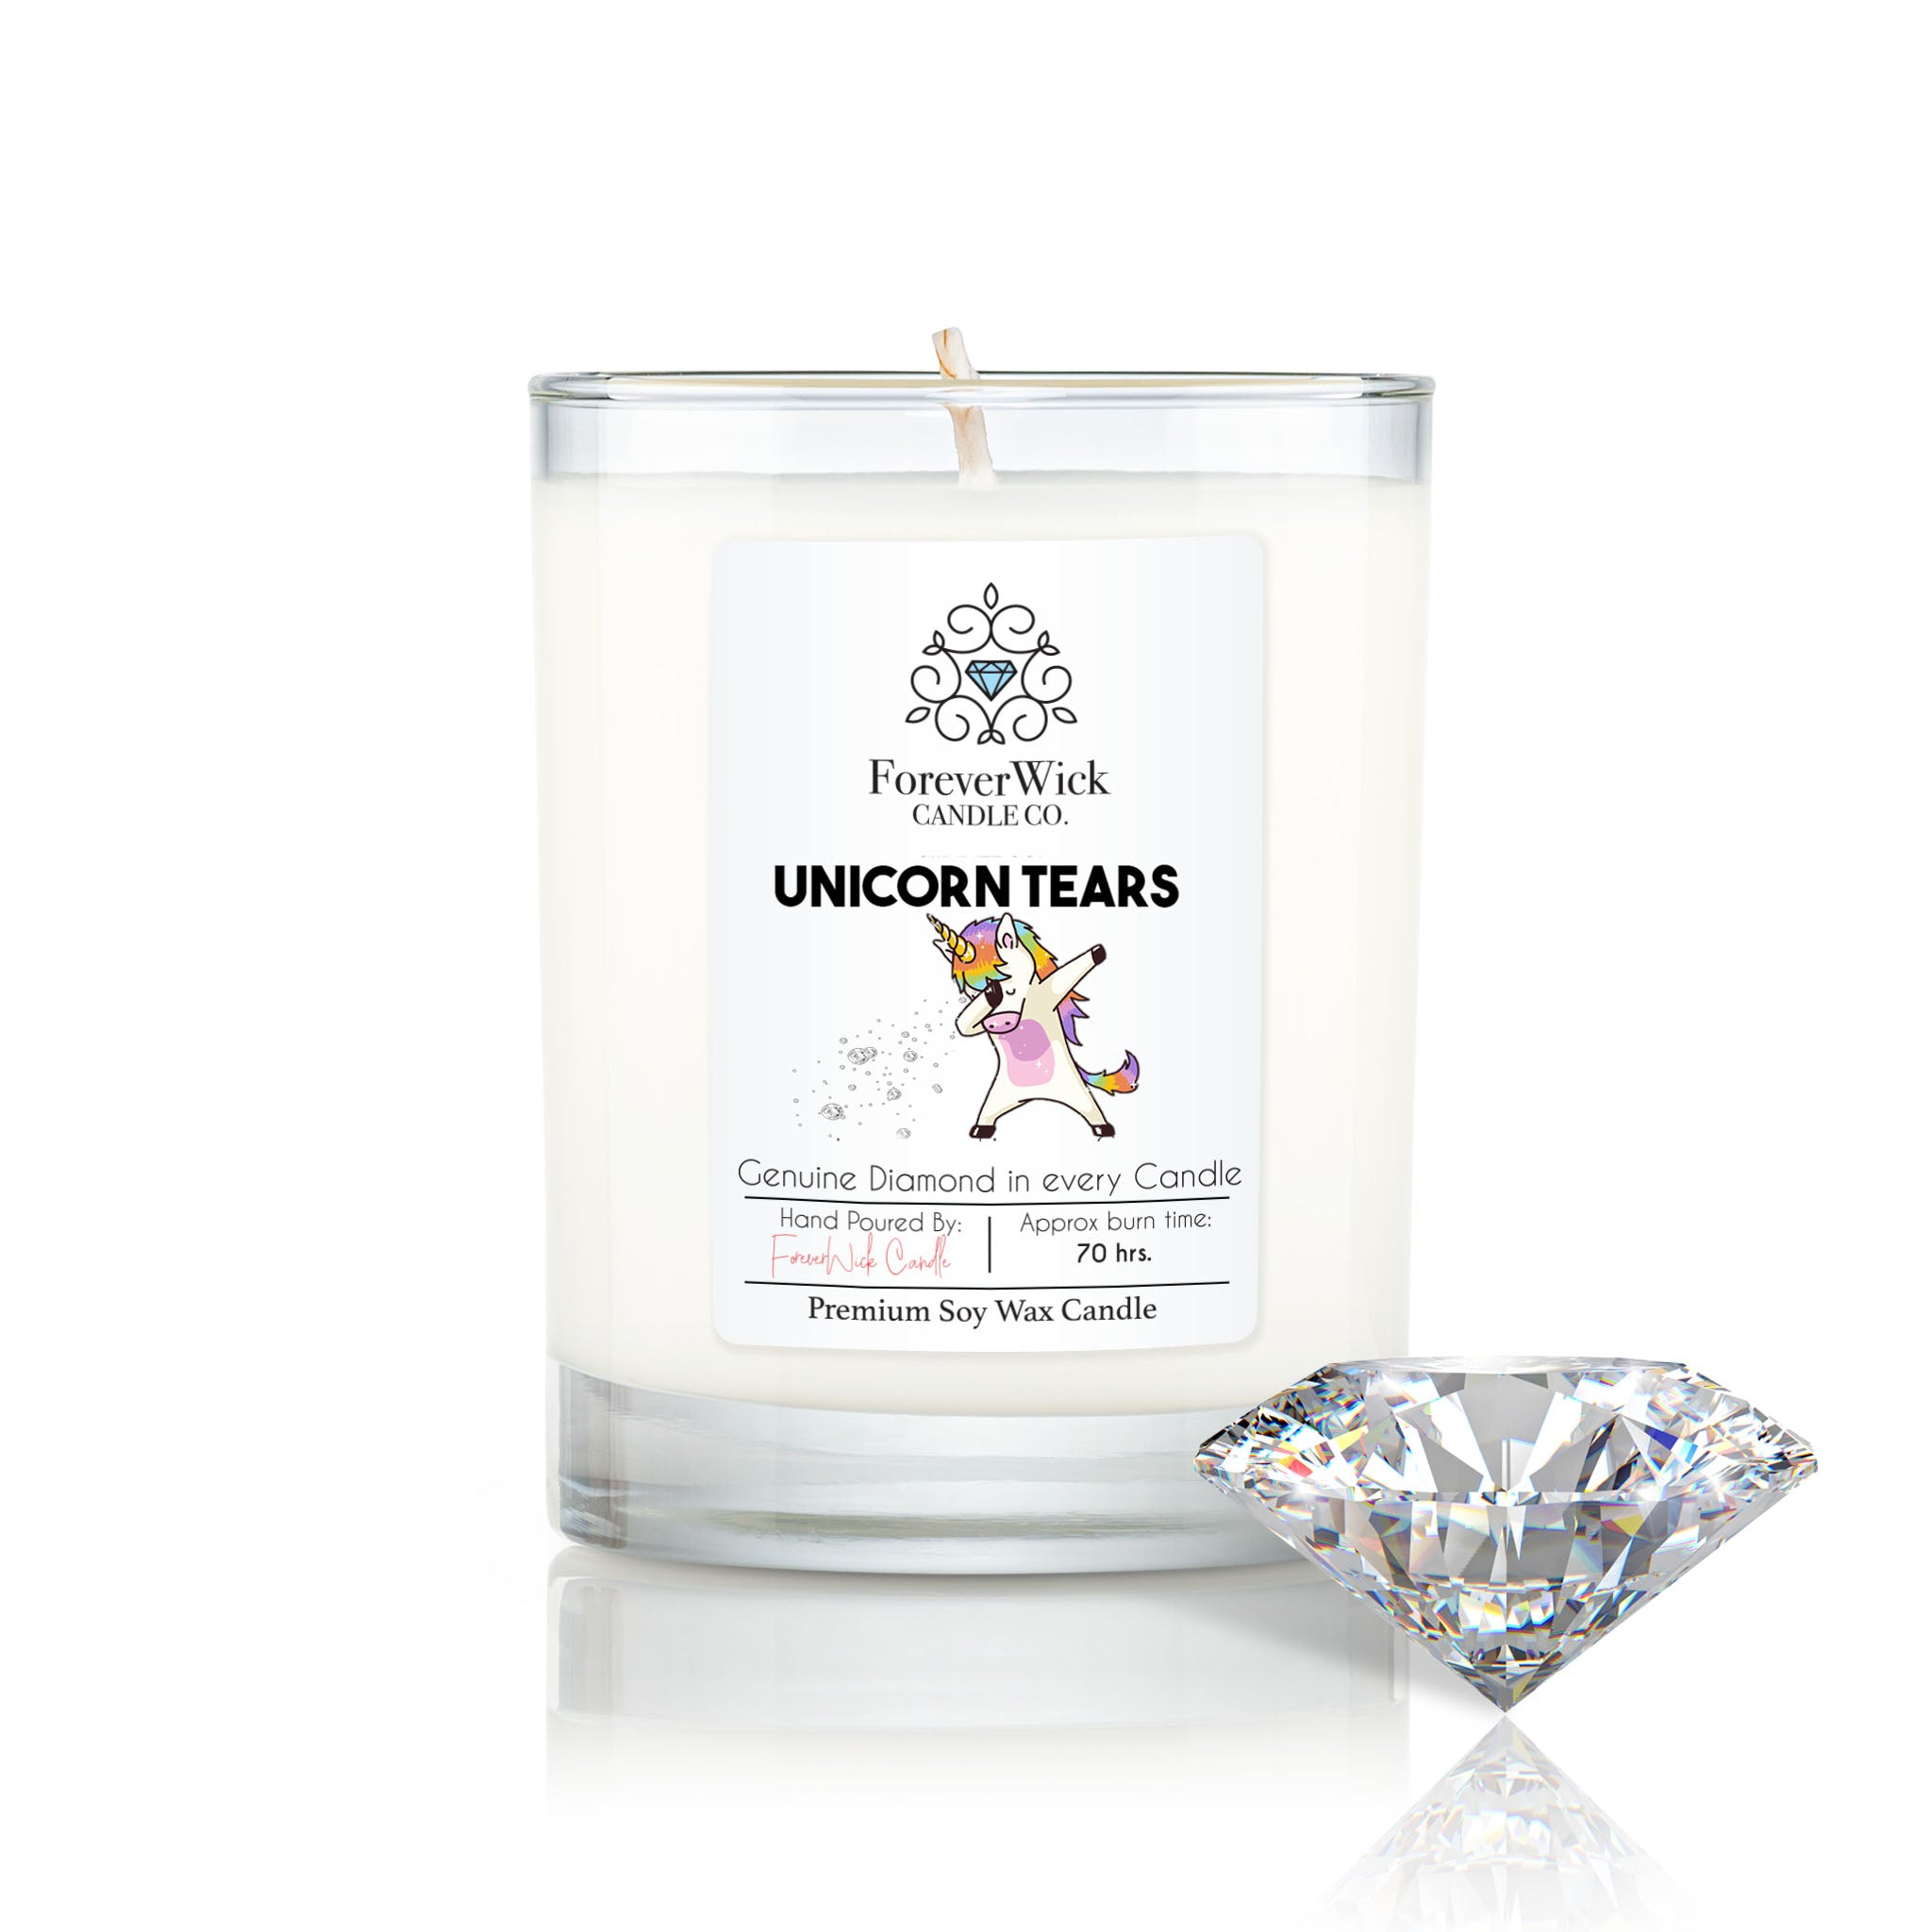 Unicorn Tears Diamond Candle